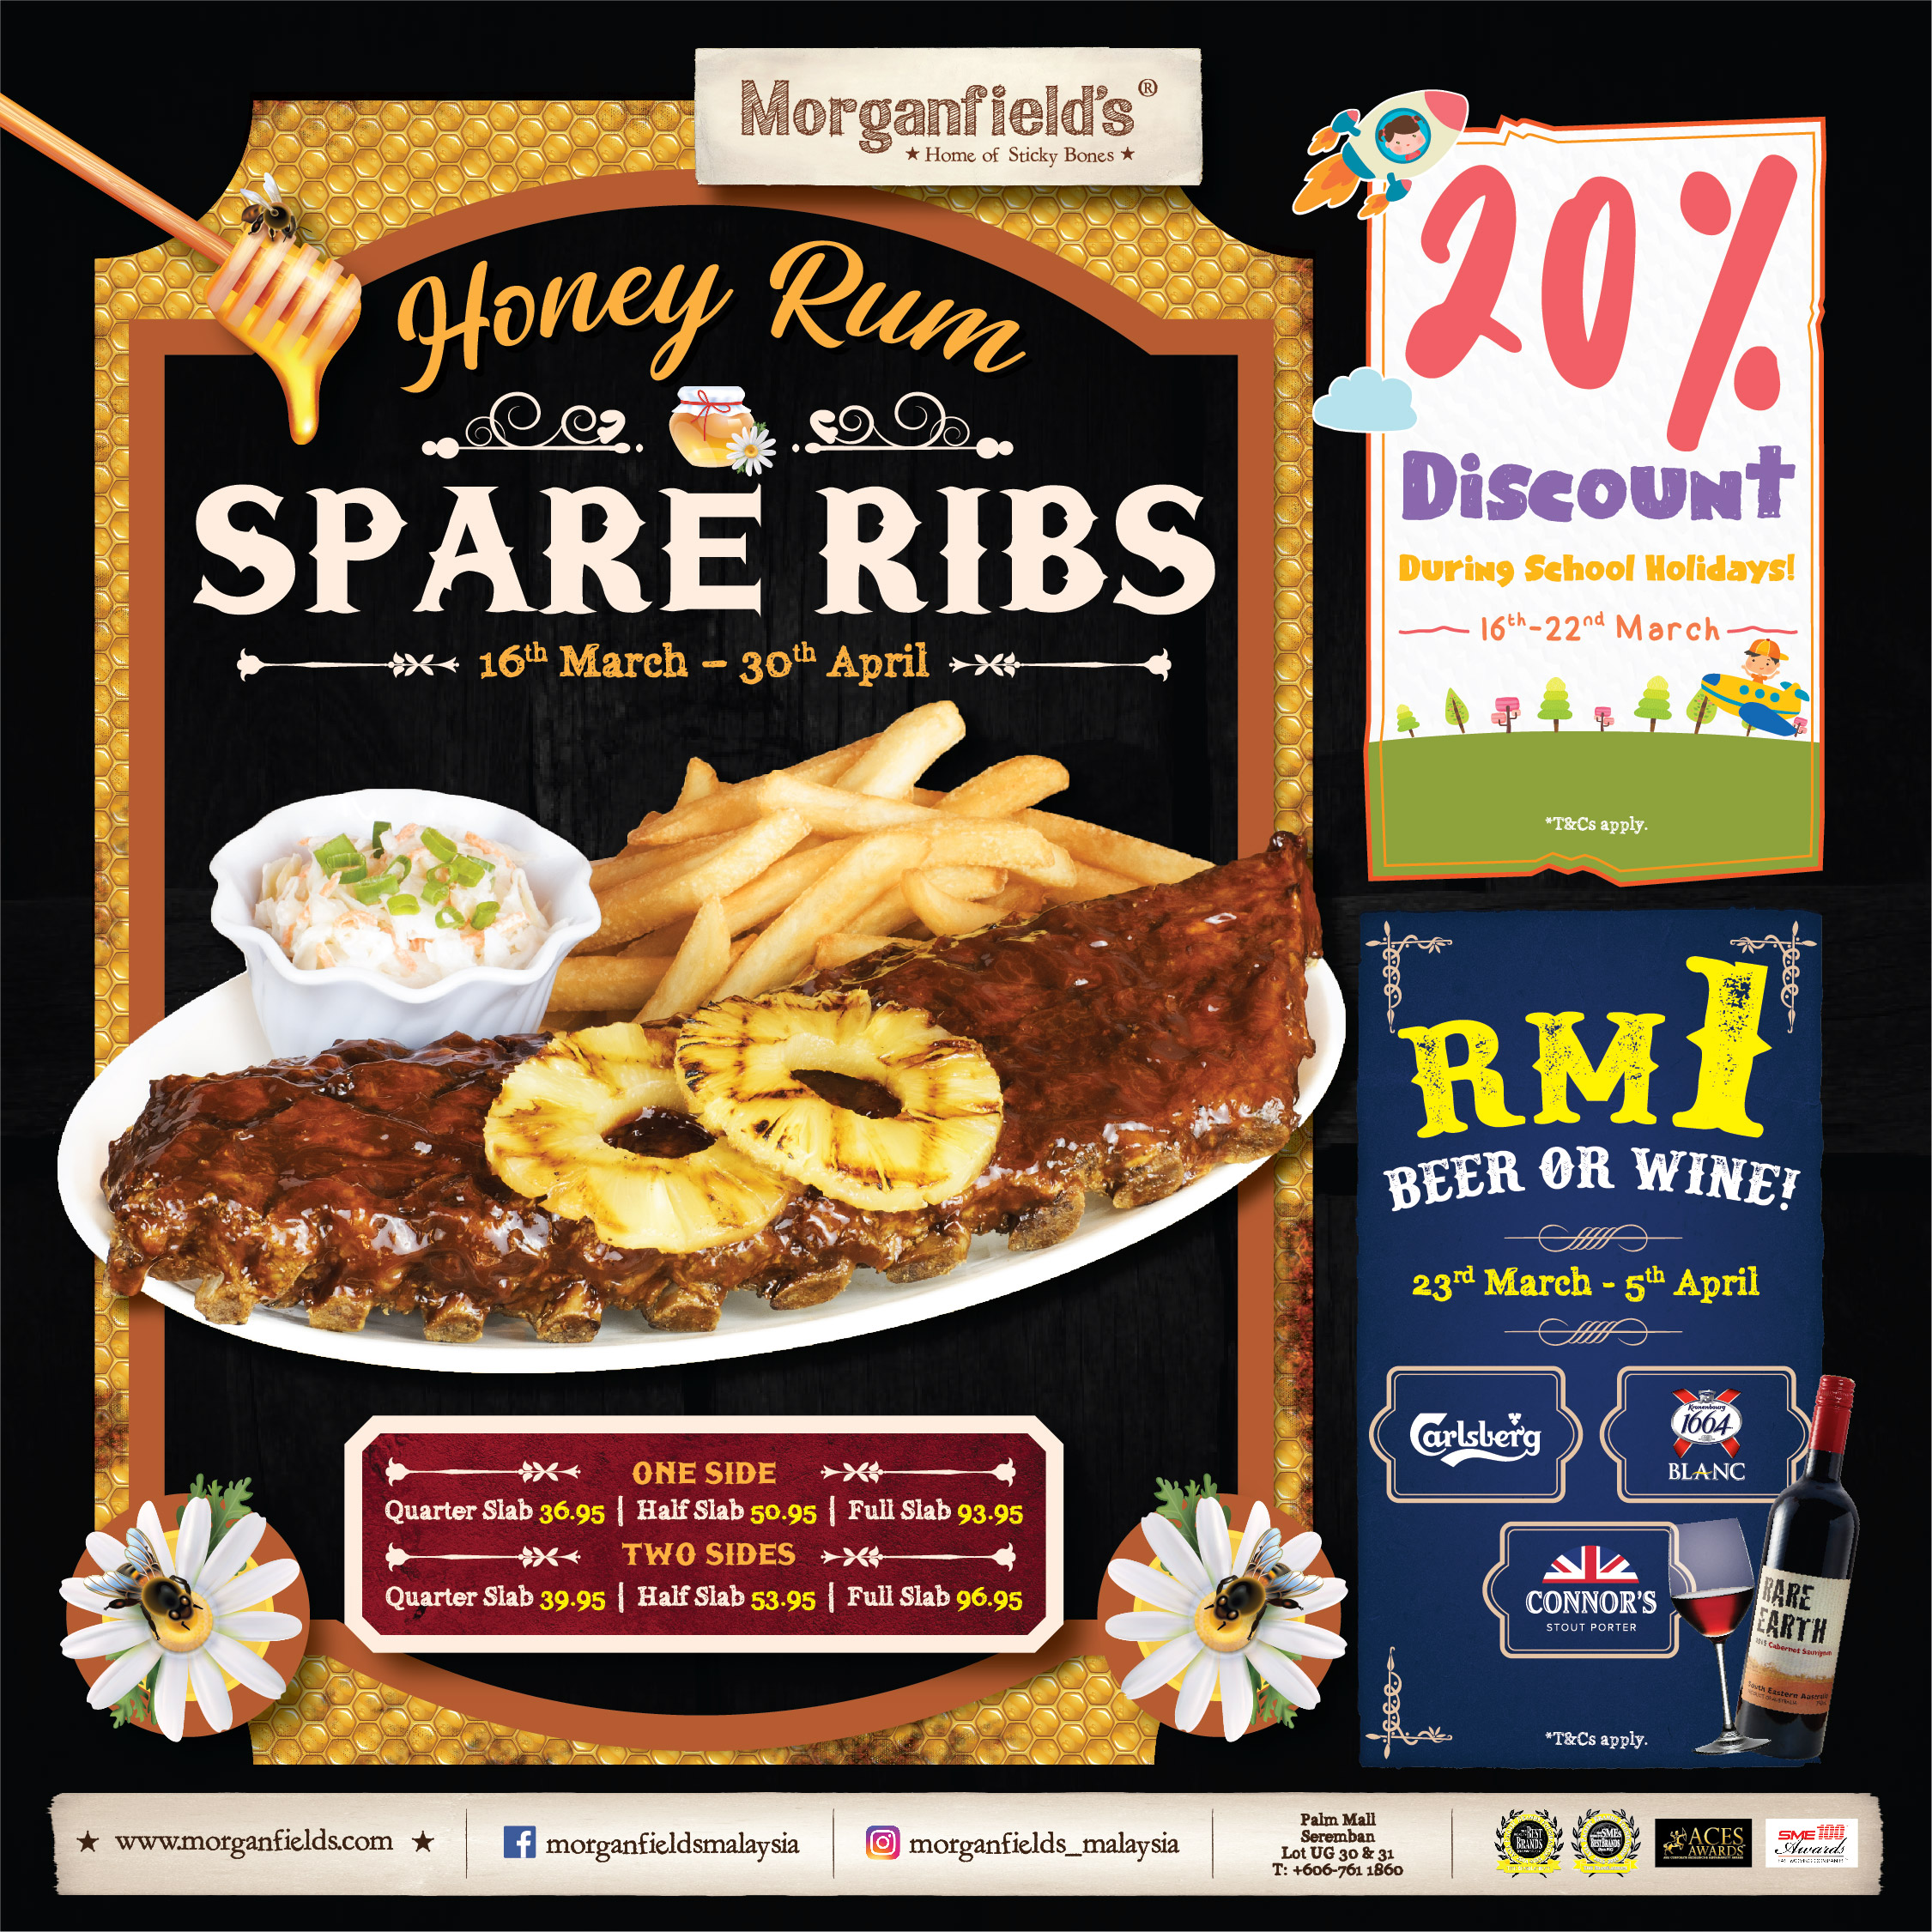 Morganfield's Honey Rum Spare Ribs